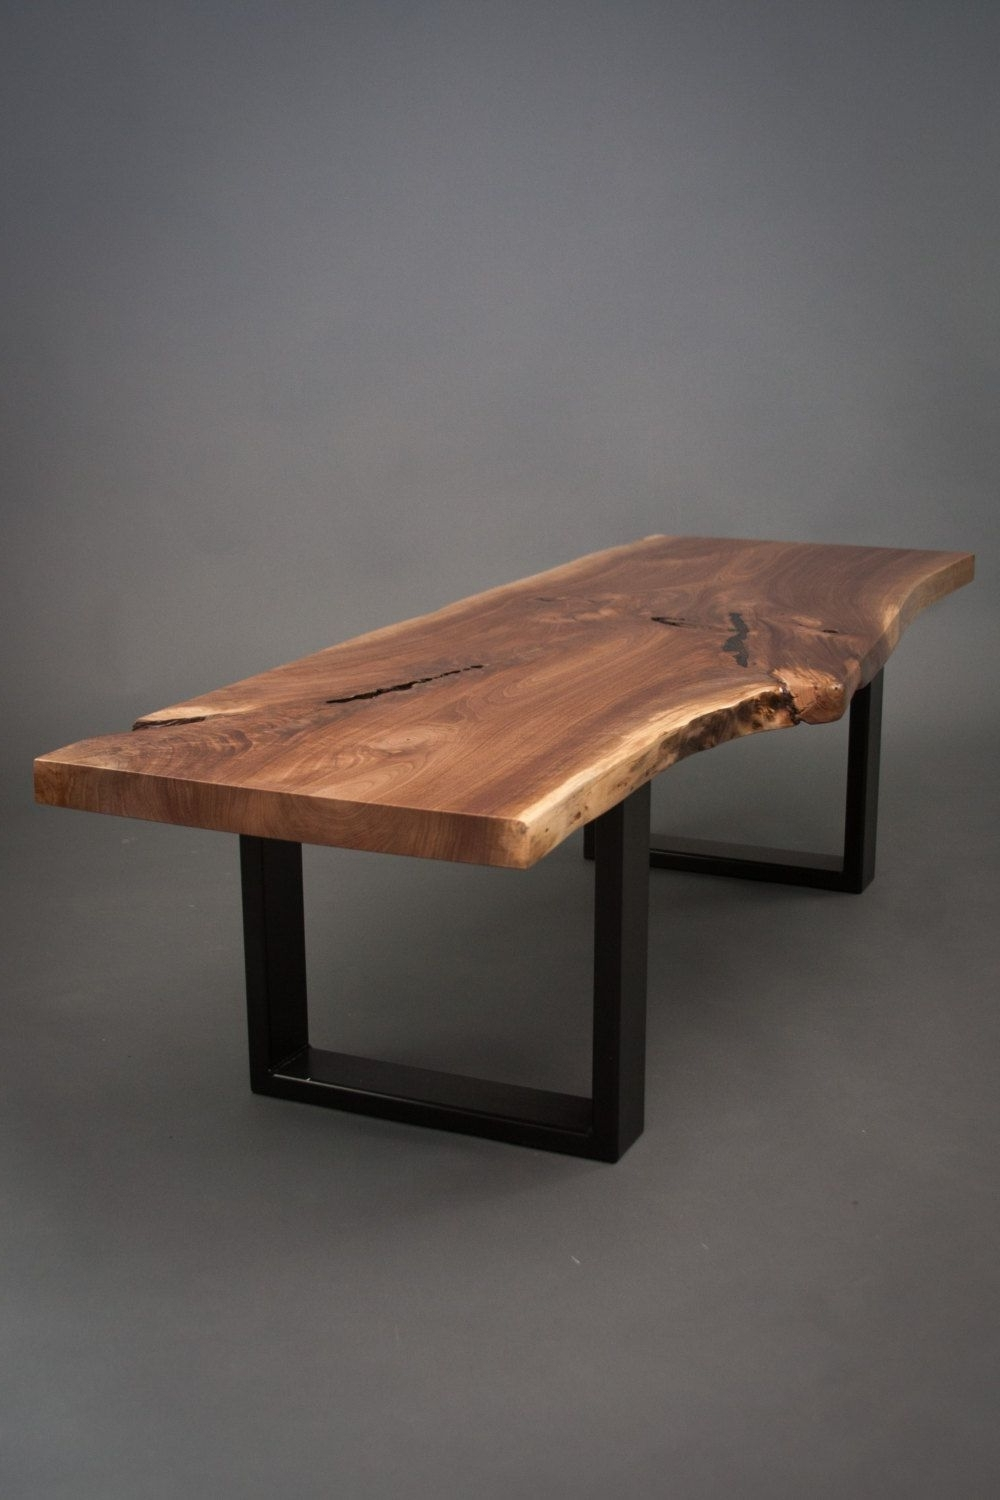 Fashionable Live Edge Teak Coffee Tables With Regard To Your Custom Black Walnut Coffee Table Size Medium – Live Edge – Slab (View 6 of 20)